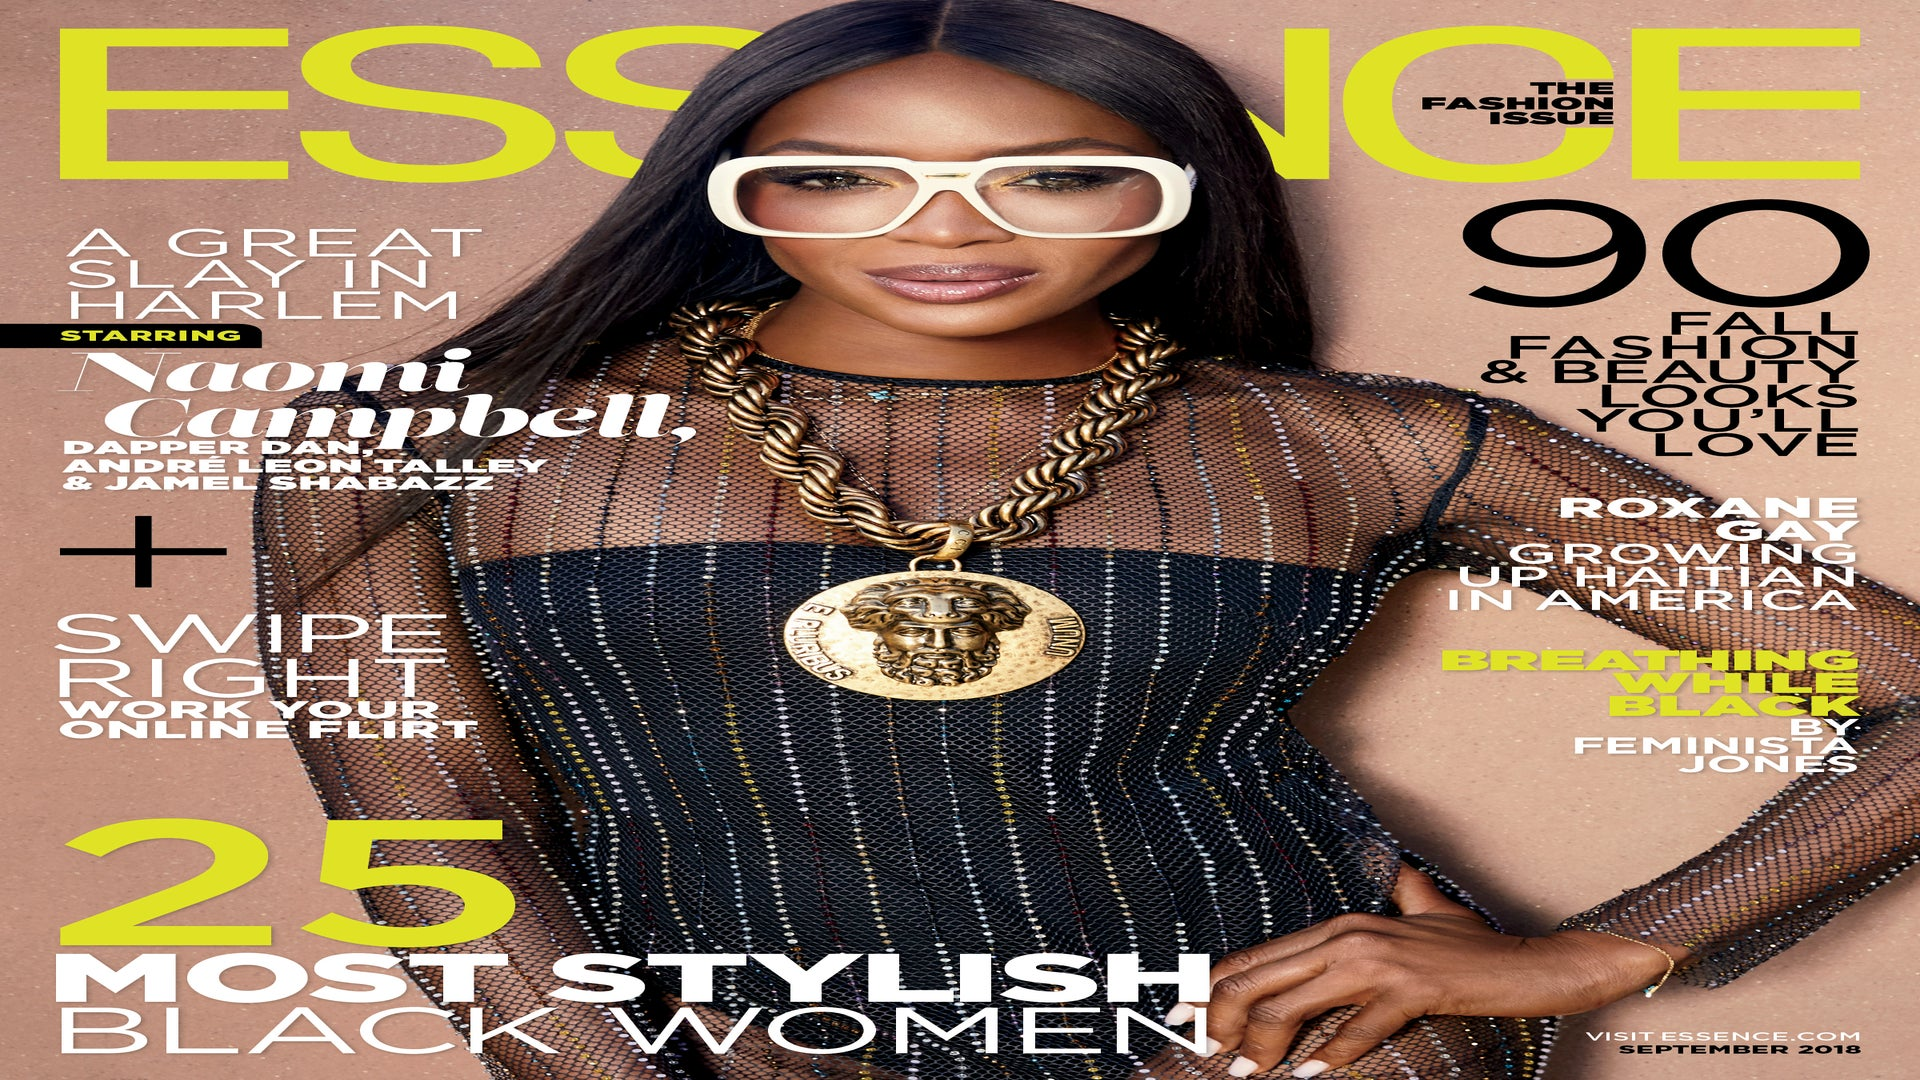 Supermodel Naomi Campbell Covers ESSENCE's September Fashion Issue, Honoring Dapper Dan